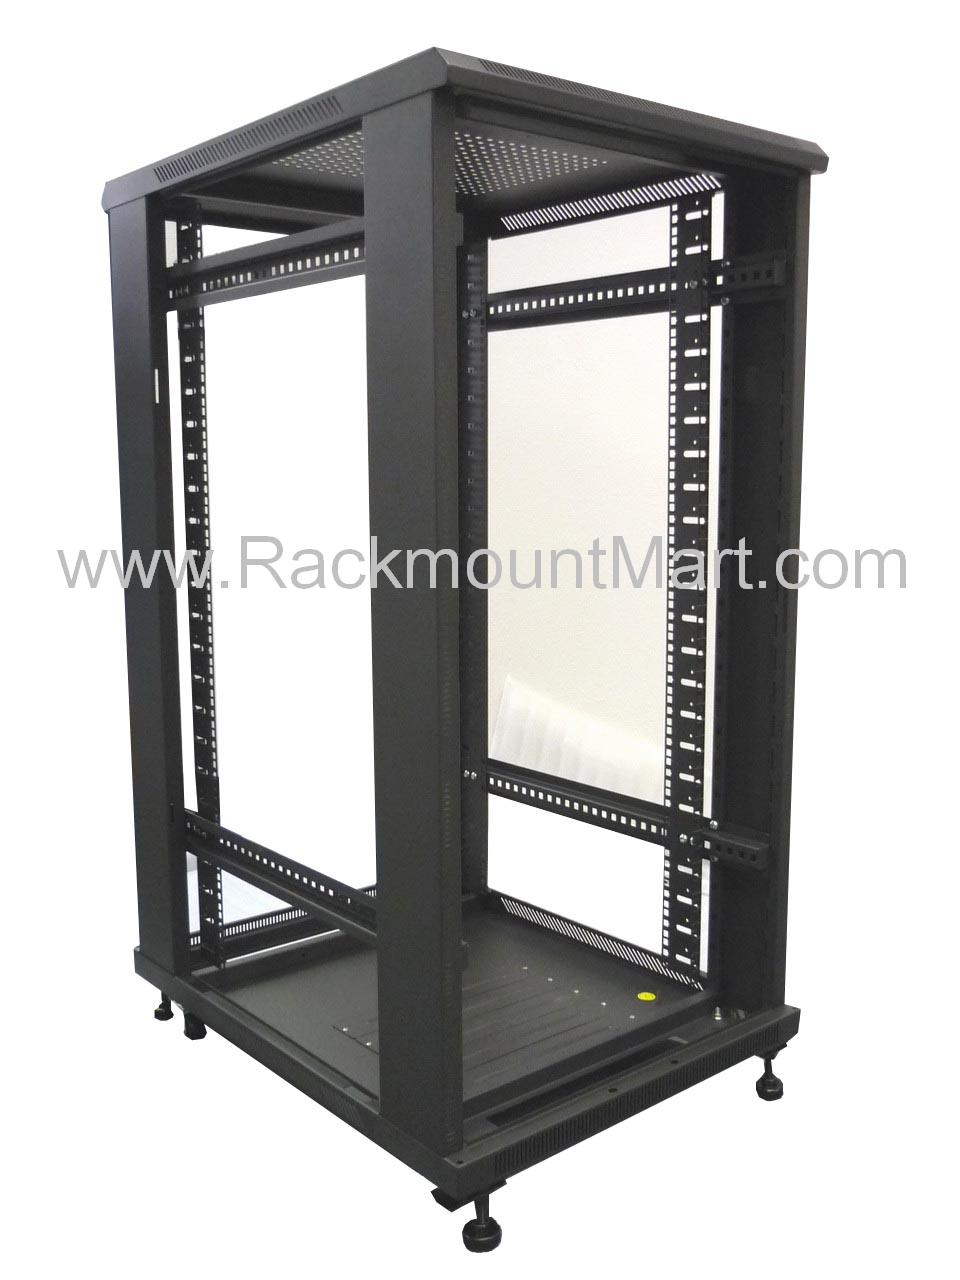 shelf rack inch server was s htm accessories sliding image rackmount click